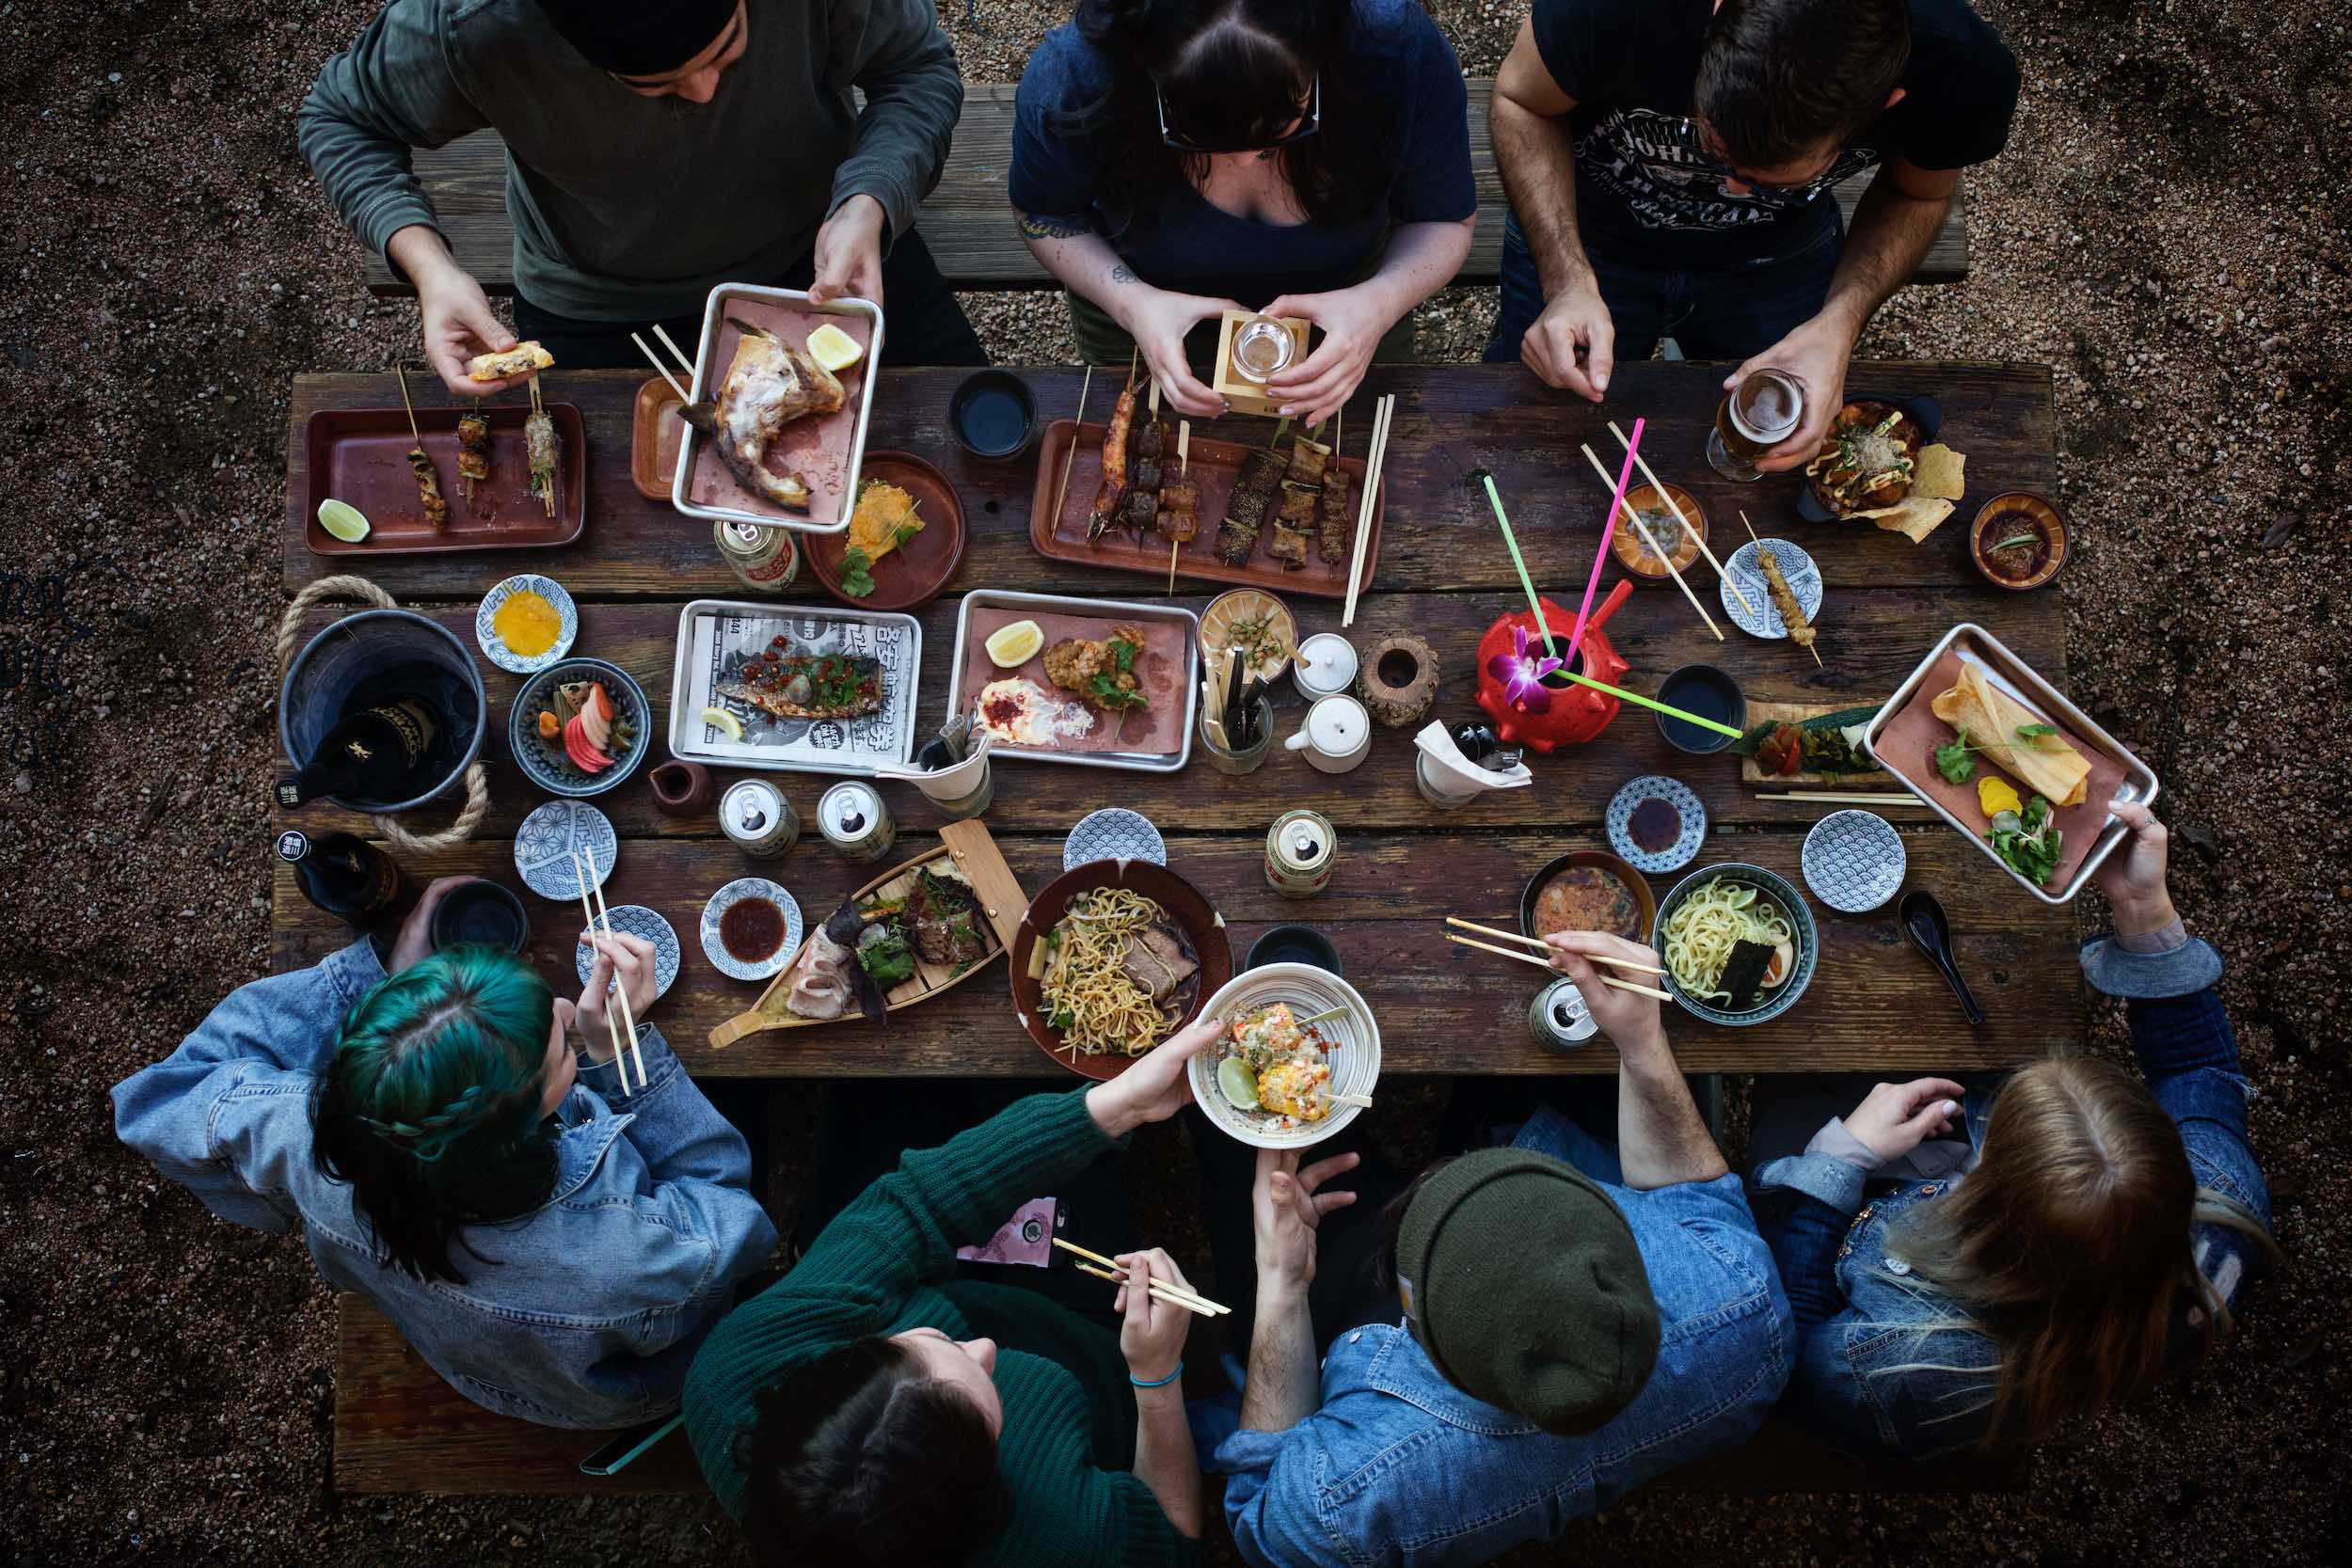 Jody Horton Photography - Outdoor picnic spread on wood table.